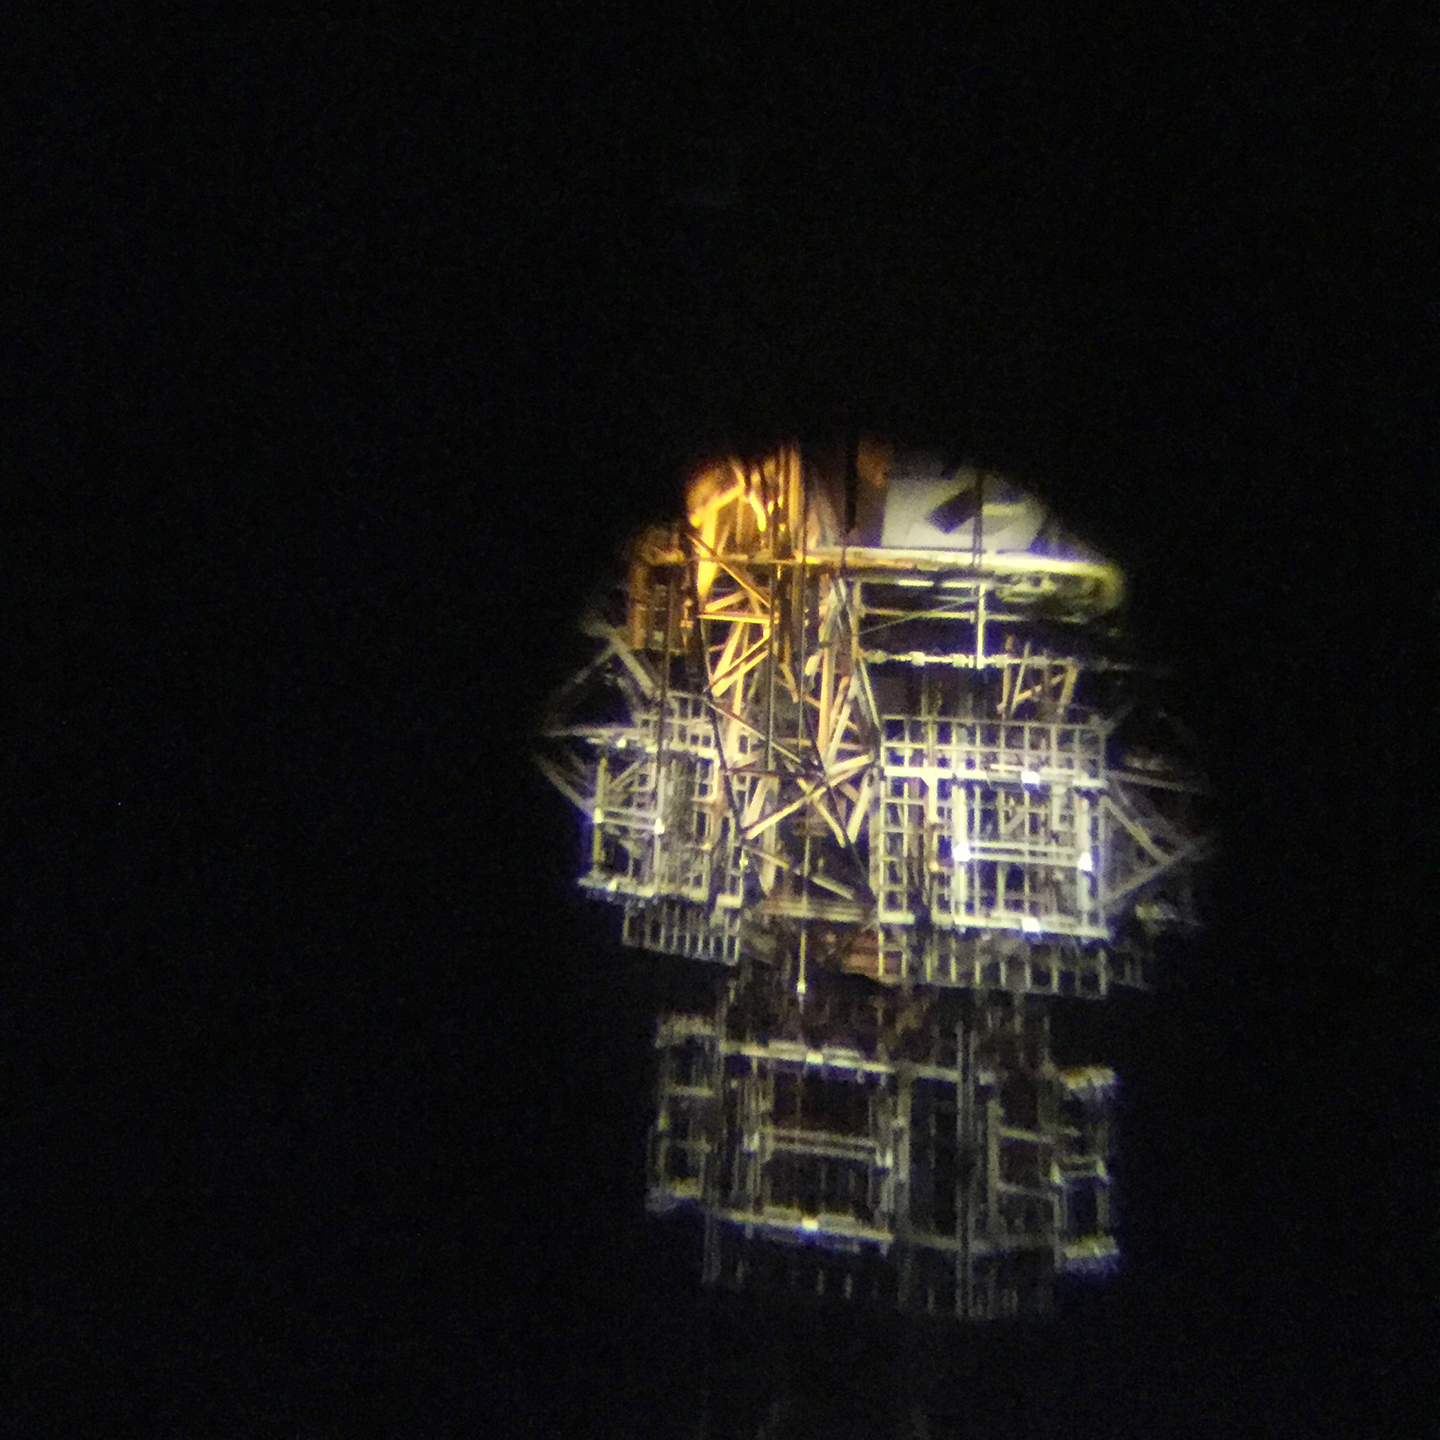 Detail of the Eiffel Tower metallic structure viewed through the telescope